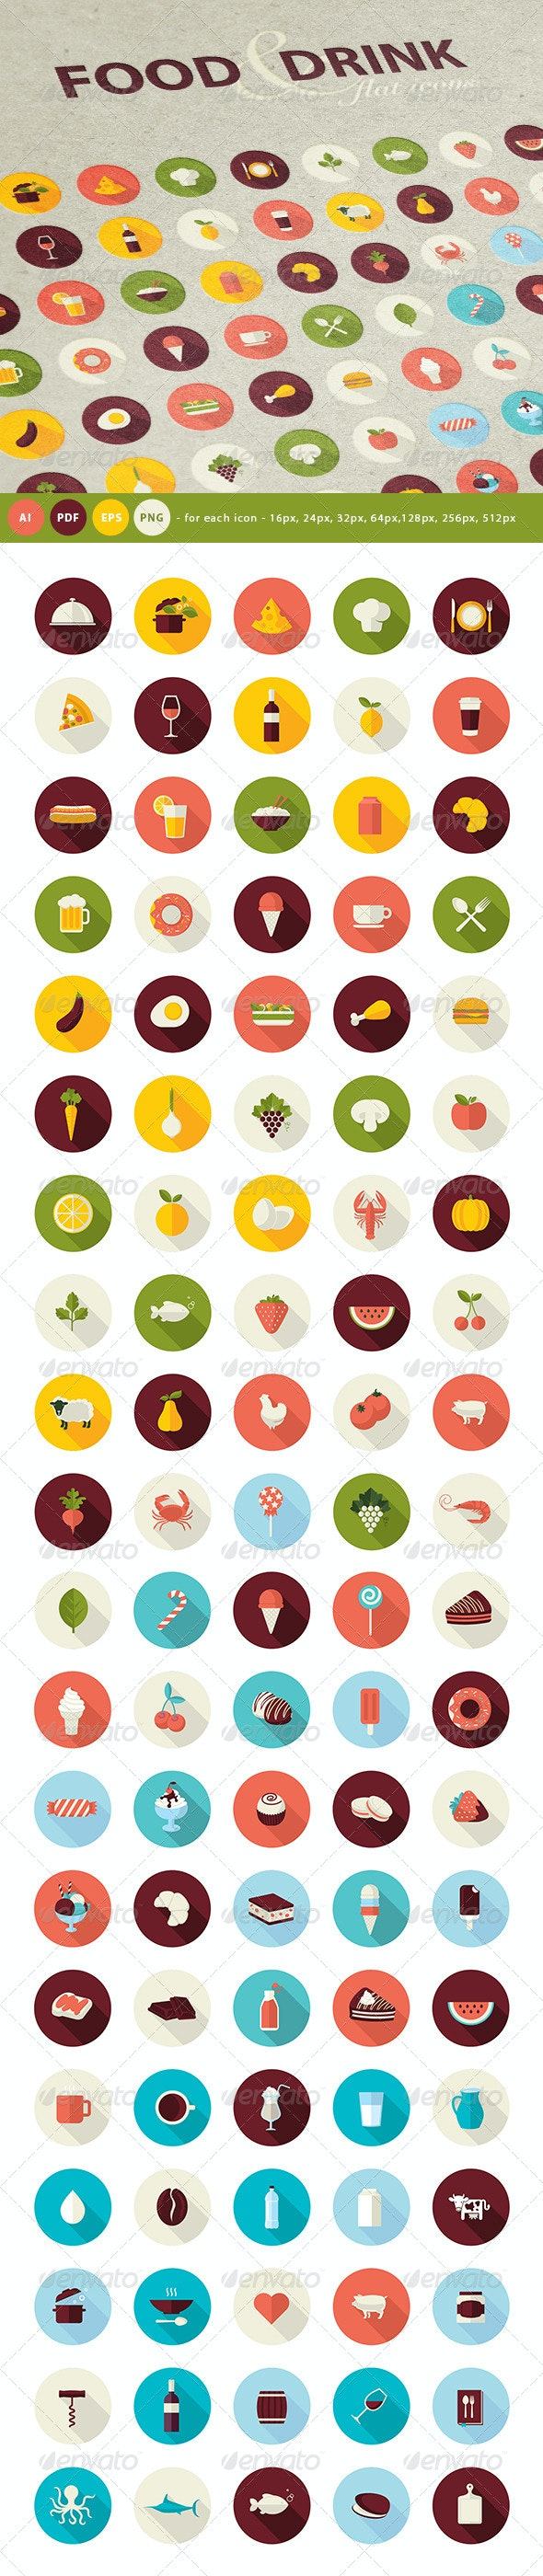 Set of Flat Design Icons for Food and Drink - Icons